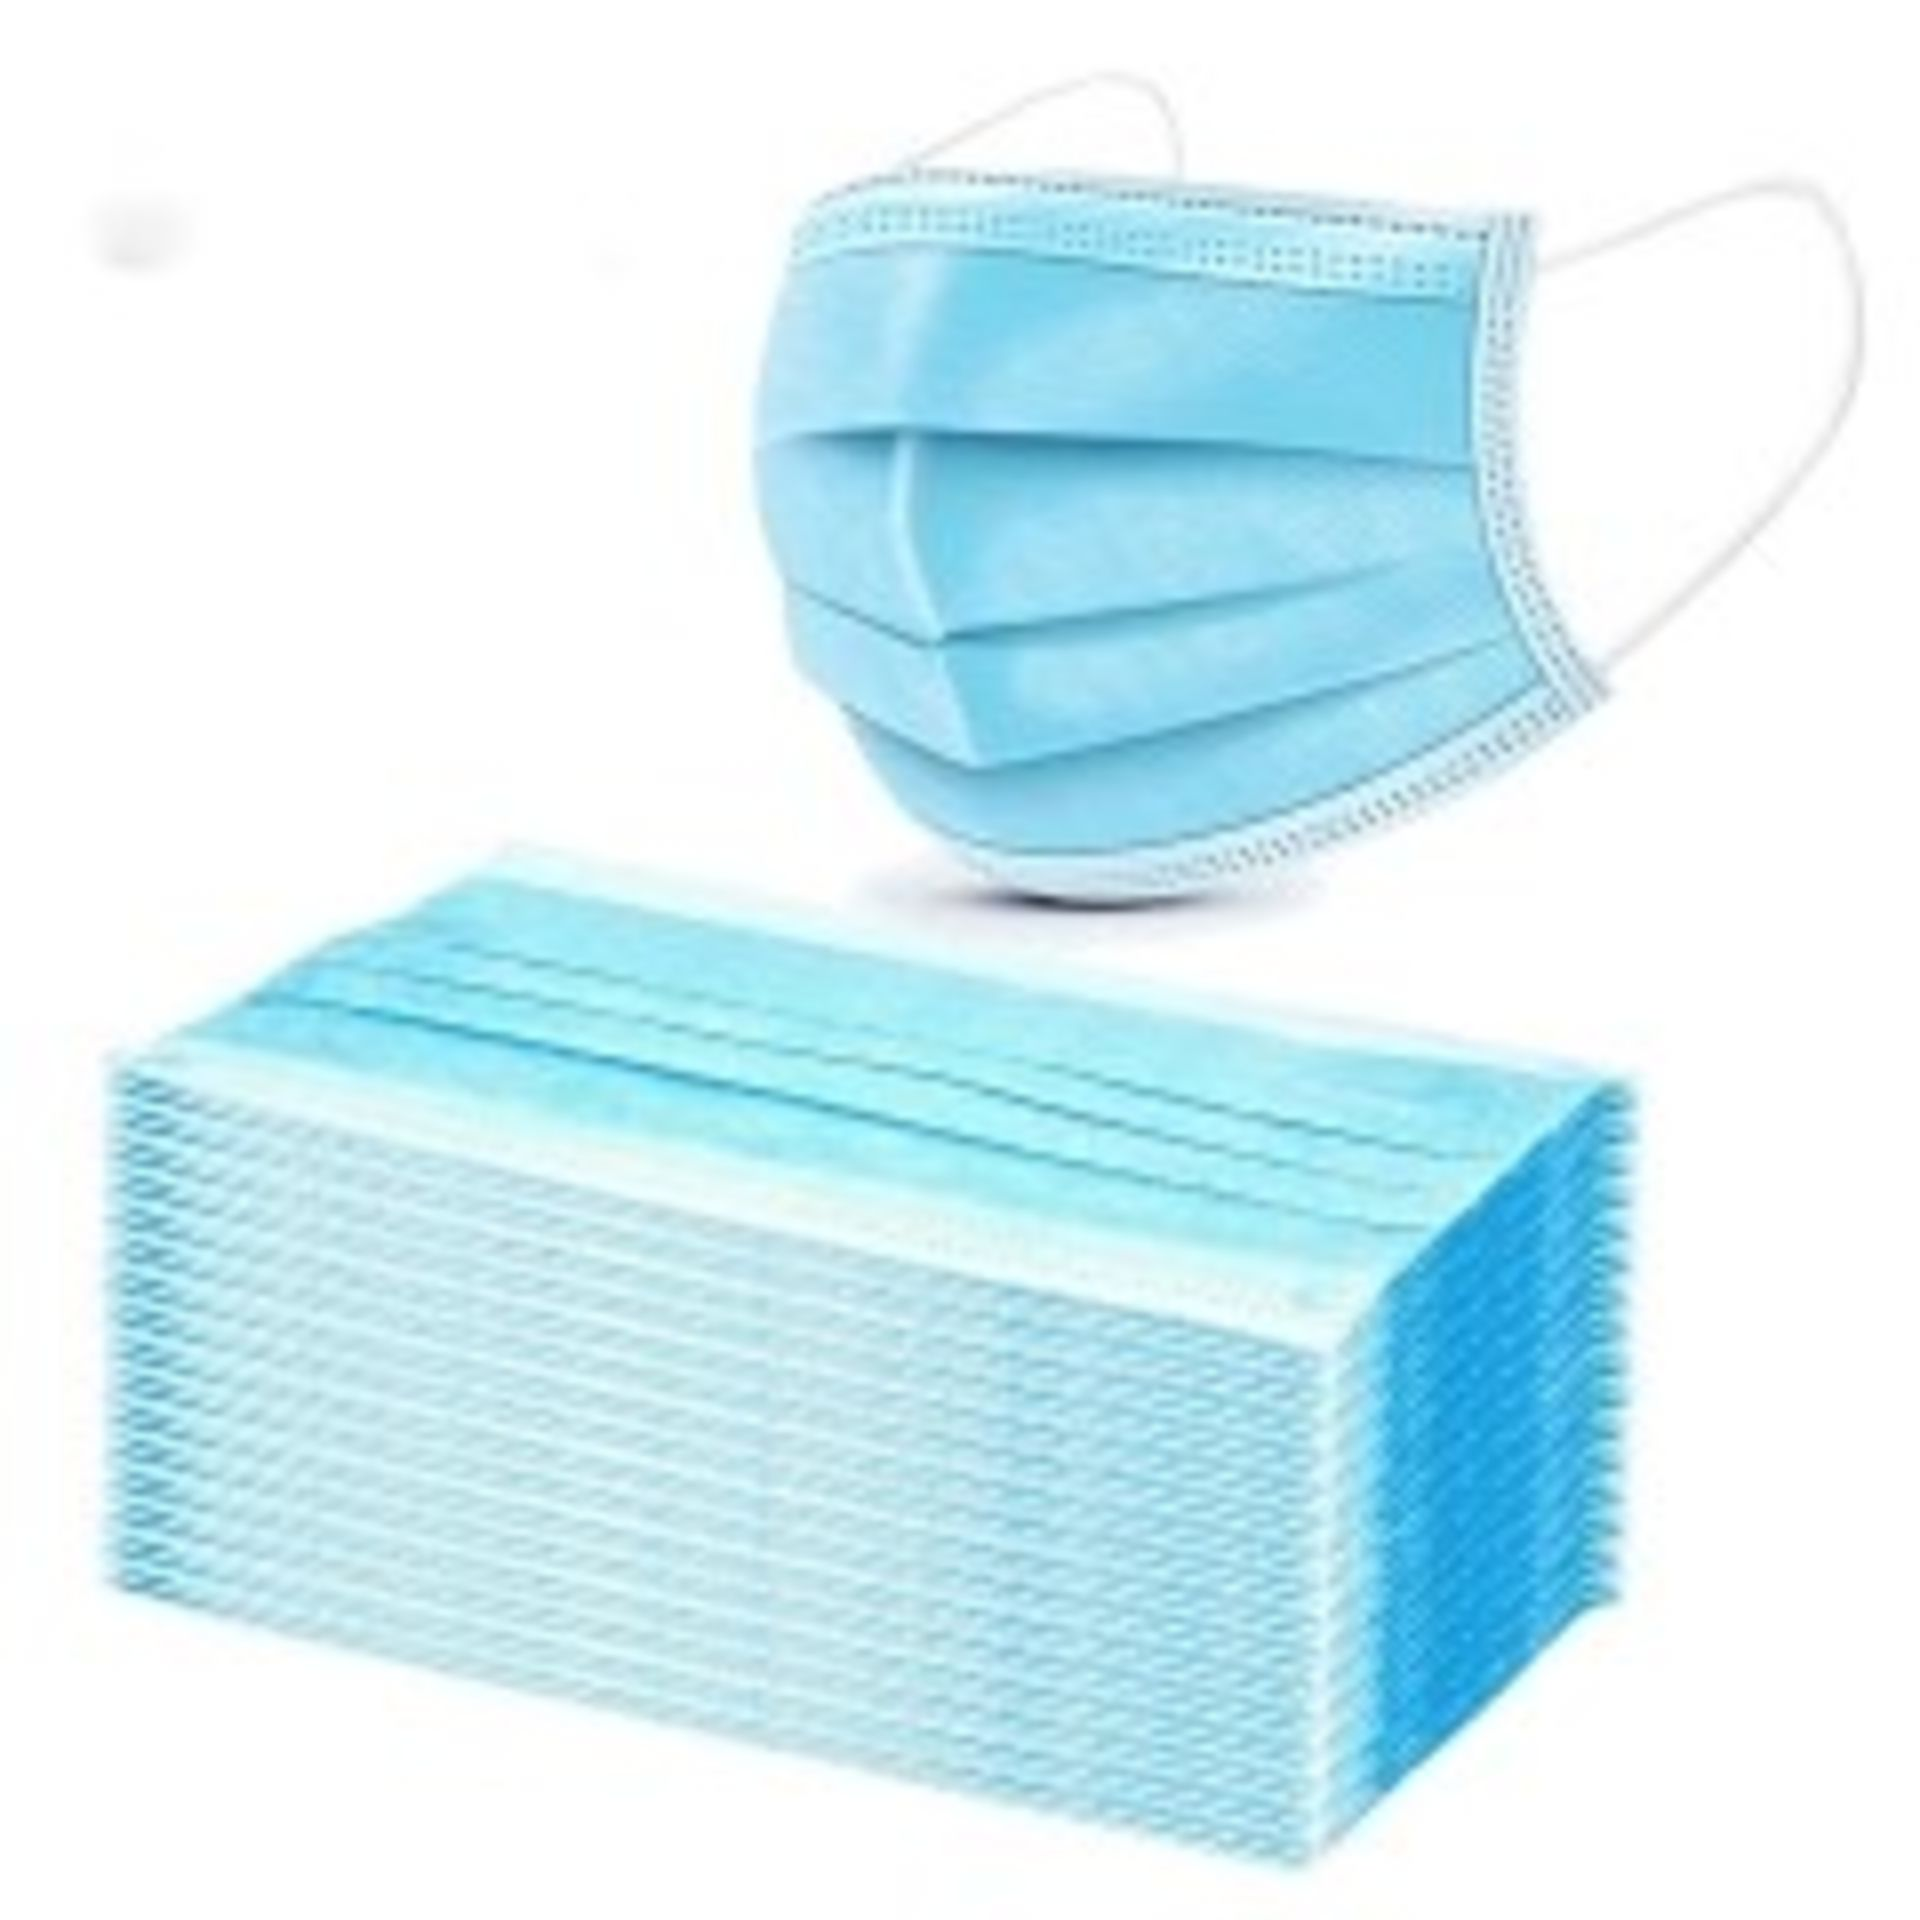 1,000 IN TOTAL 3 X PLY DISPOSABLE FACE MASKS *NO VAT* - Image 3 of 3